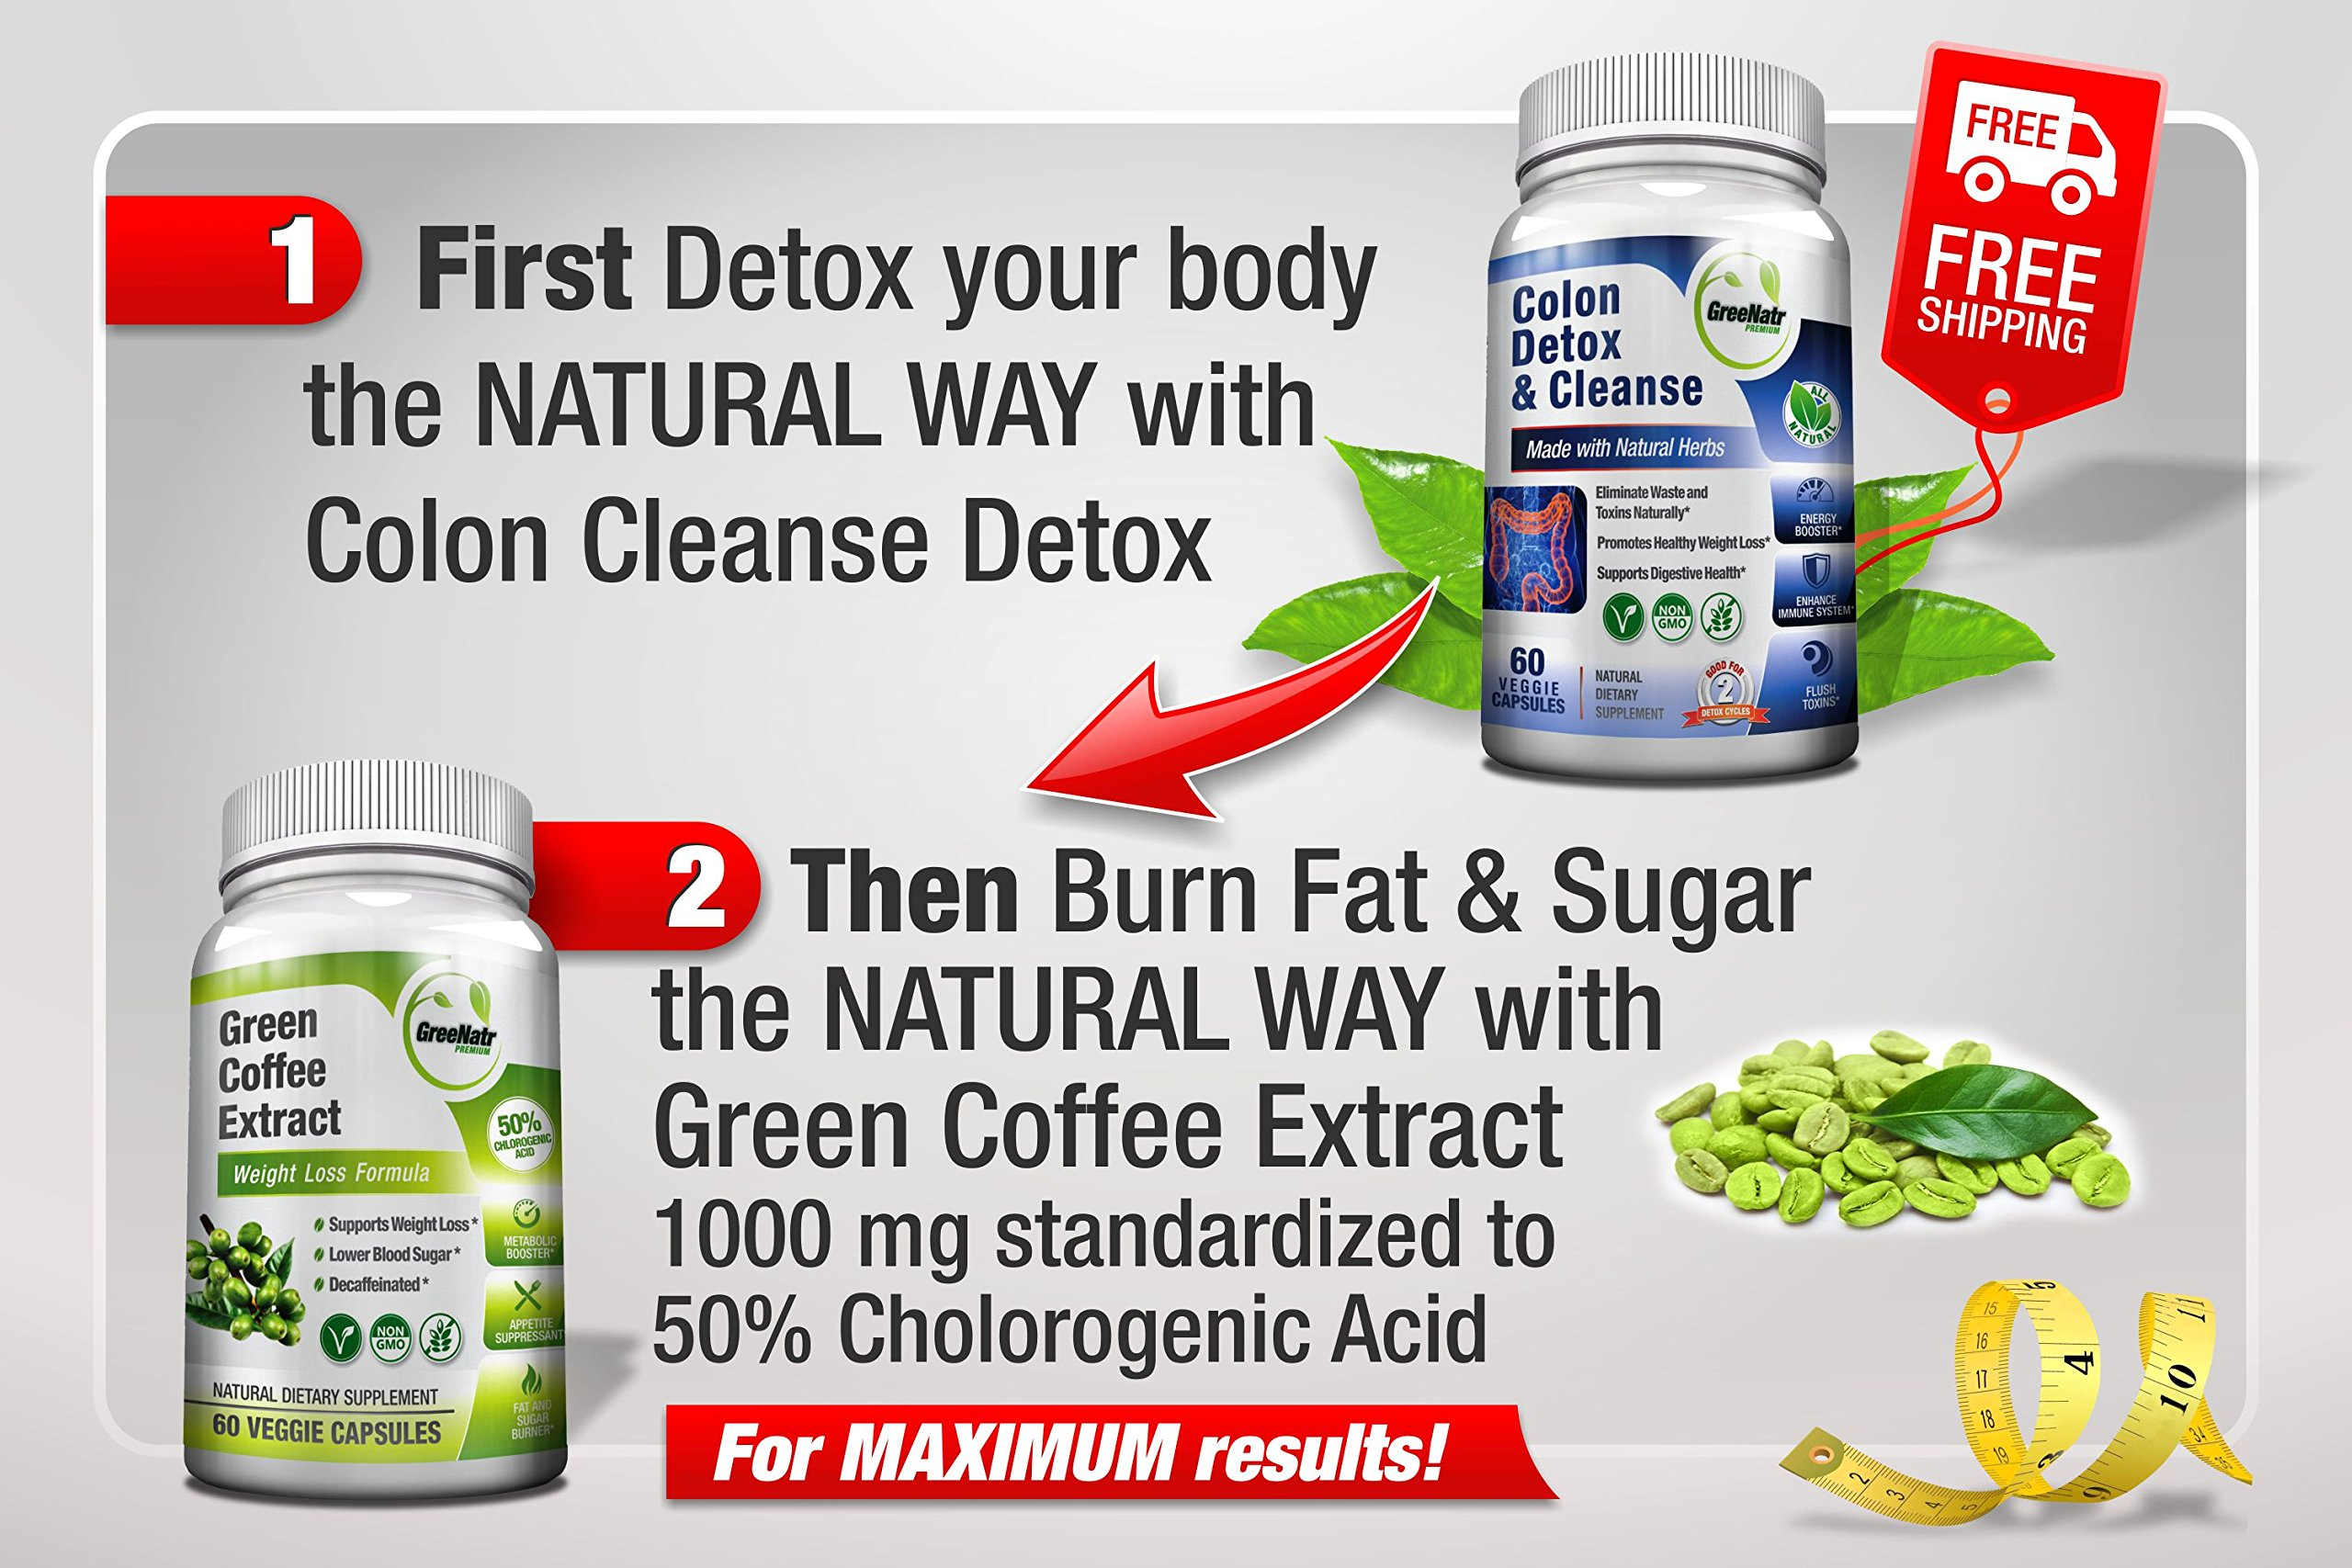 Pure Green Coffee Bean Extract + Colon Cleanse Detox Diet - Weight Loss and Detox Bundle - 480 Veggie Capsules - Gluten Free - Non GMO (6 Months Supply) by GreeNatr (Image #2)